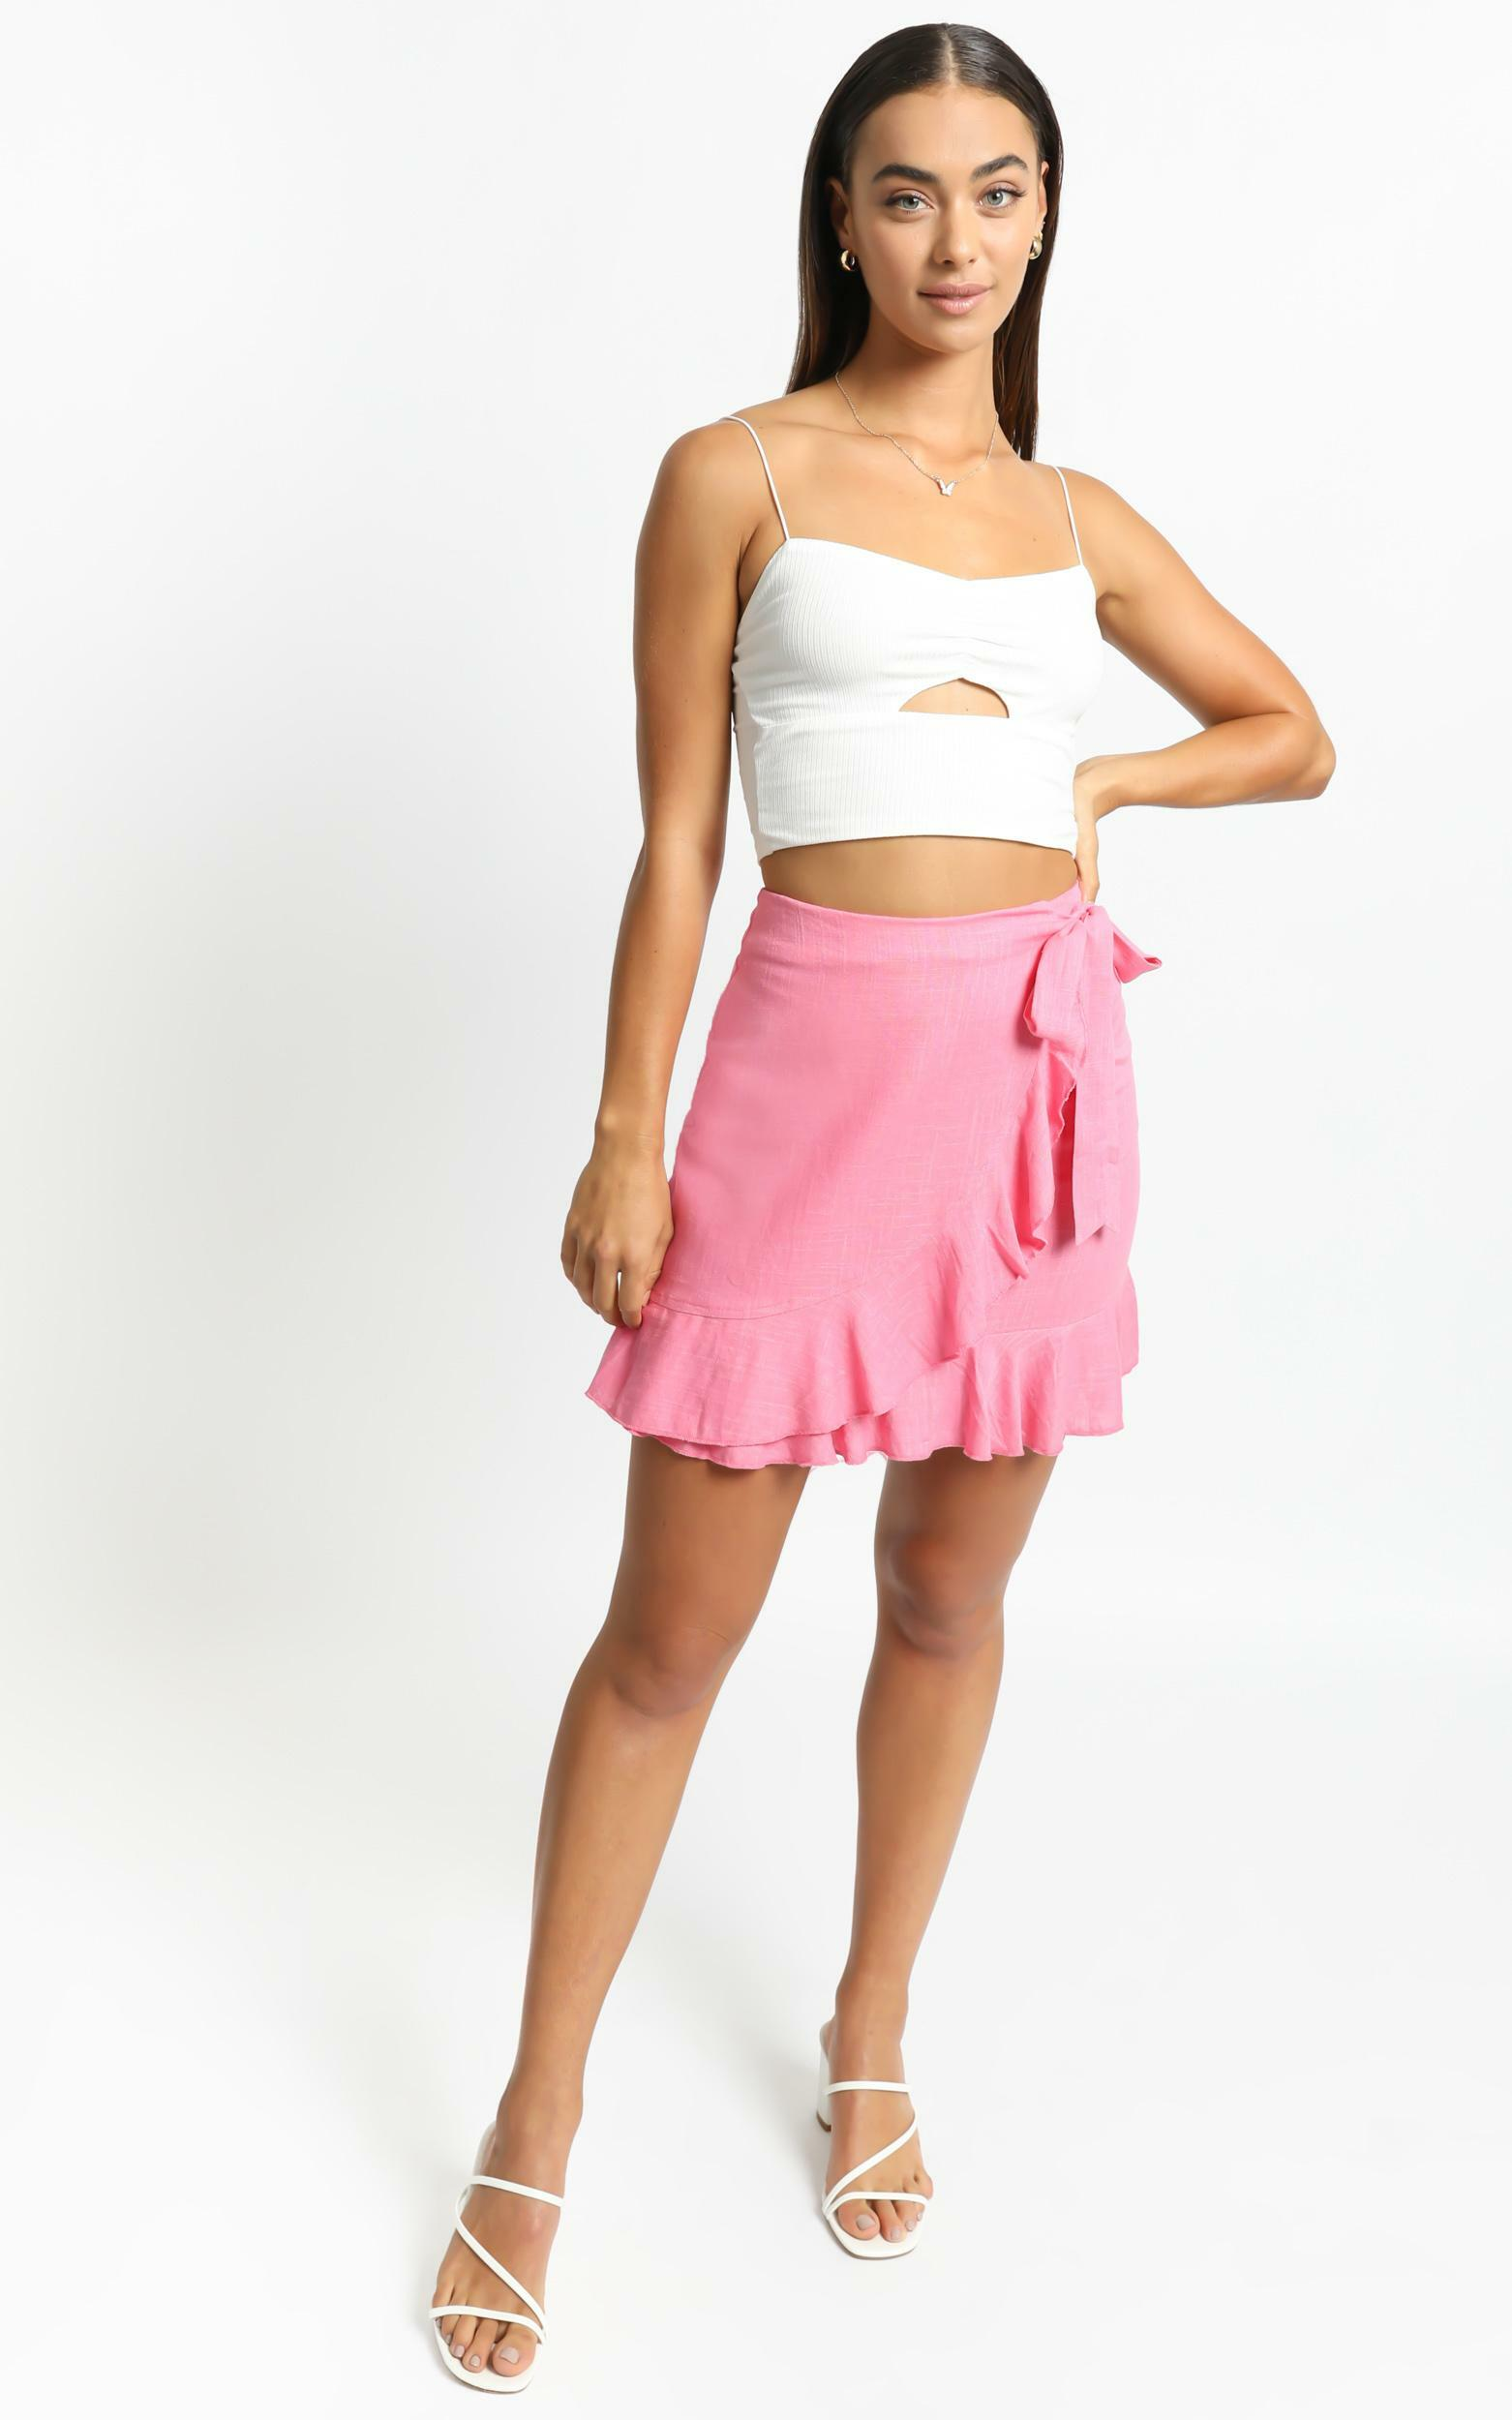 Over and Under Skirt in Pink - 6 (XS), PNK1, hi-res image number null